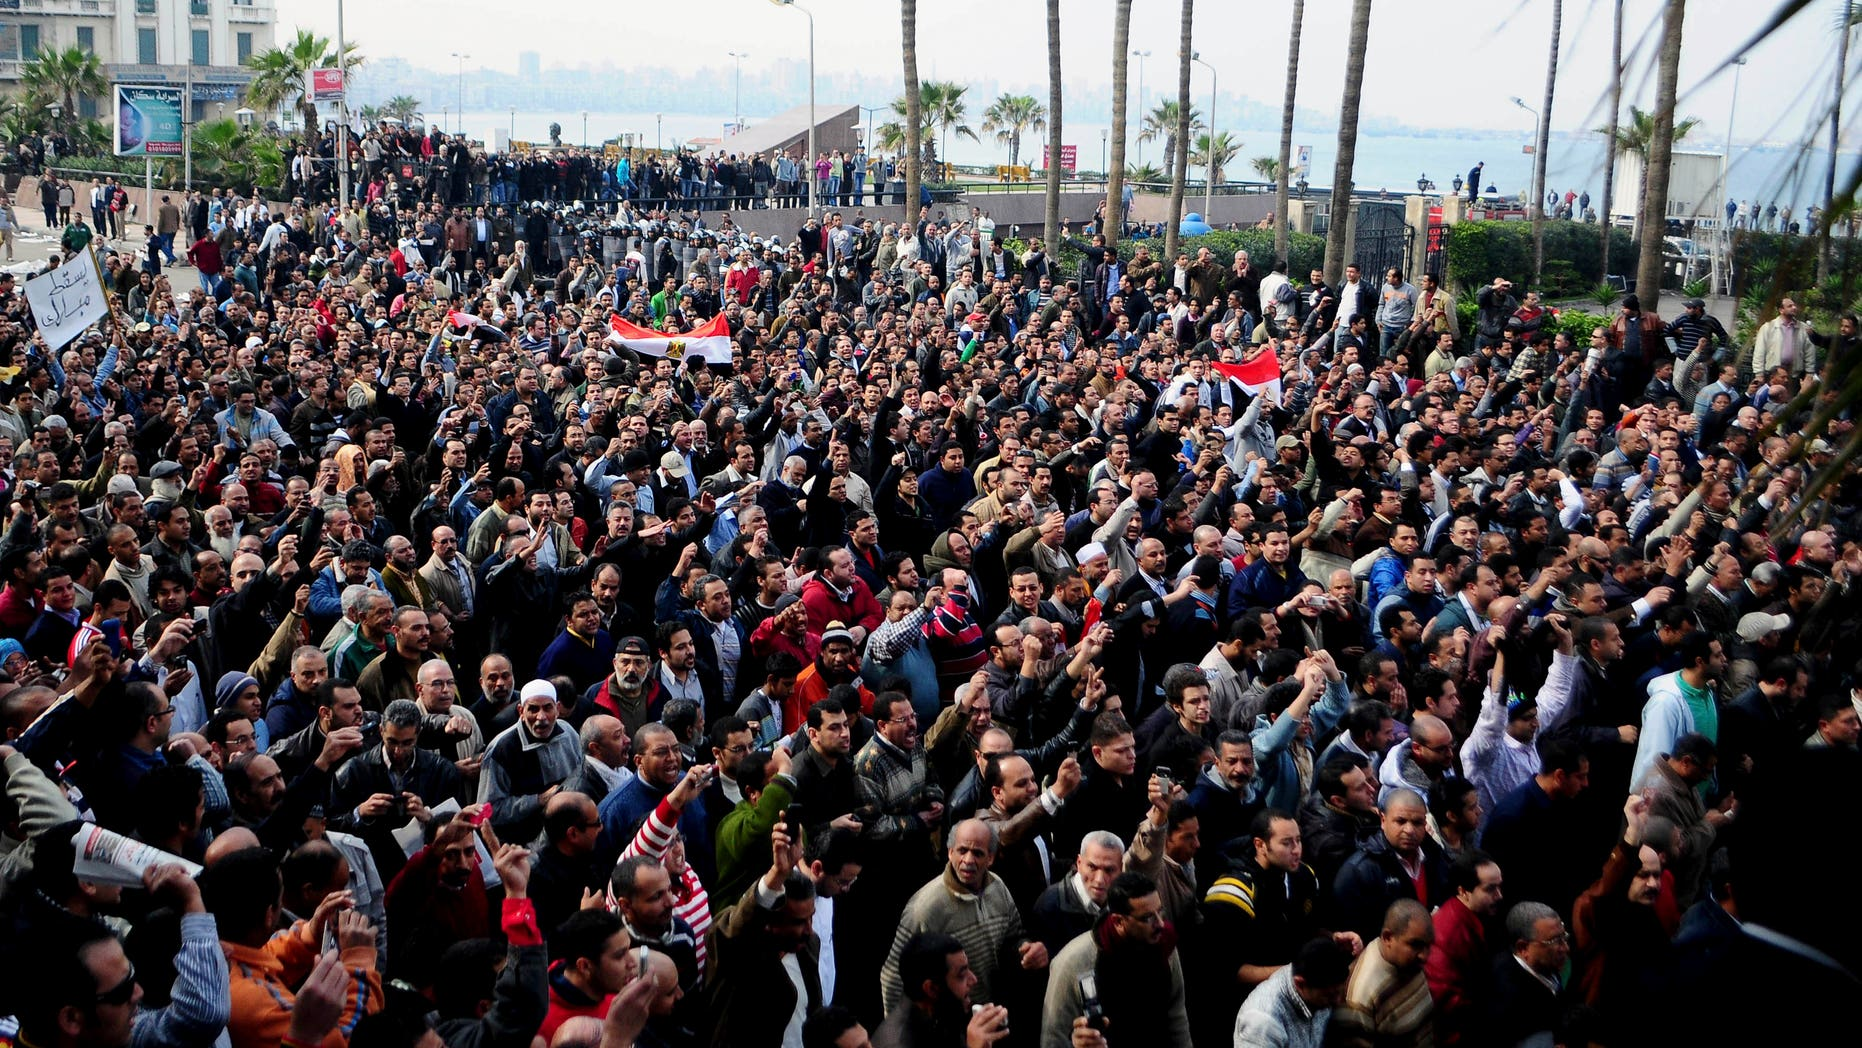 Jan. 28: A crowd demonstrates in Alexandria, Egypt. Thousands of Alexandrians met to pray Sunday Jan 30 in downtown Alexandria, a Mediterranean port city that is a stronghold of the Muslim Brotherhood. After prayers, the crowd marched towards the city's old mosque to pray for the souls of those who died in the protests. (AP)